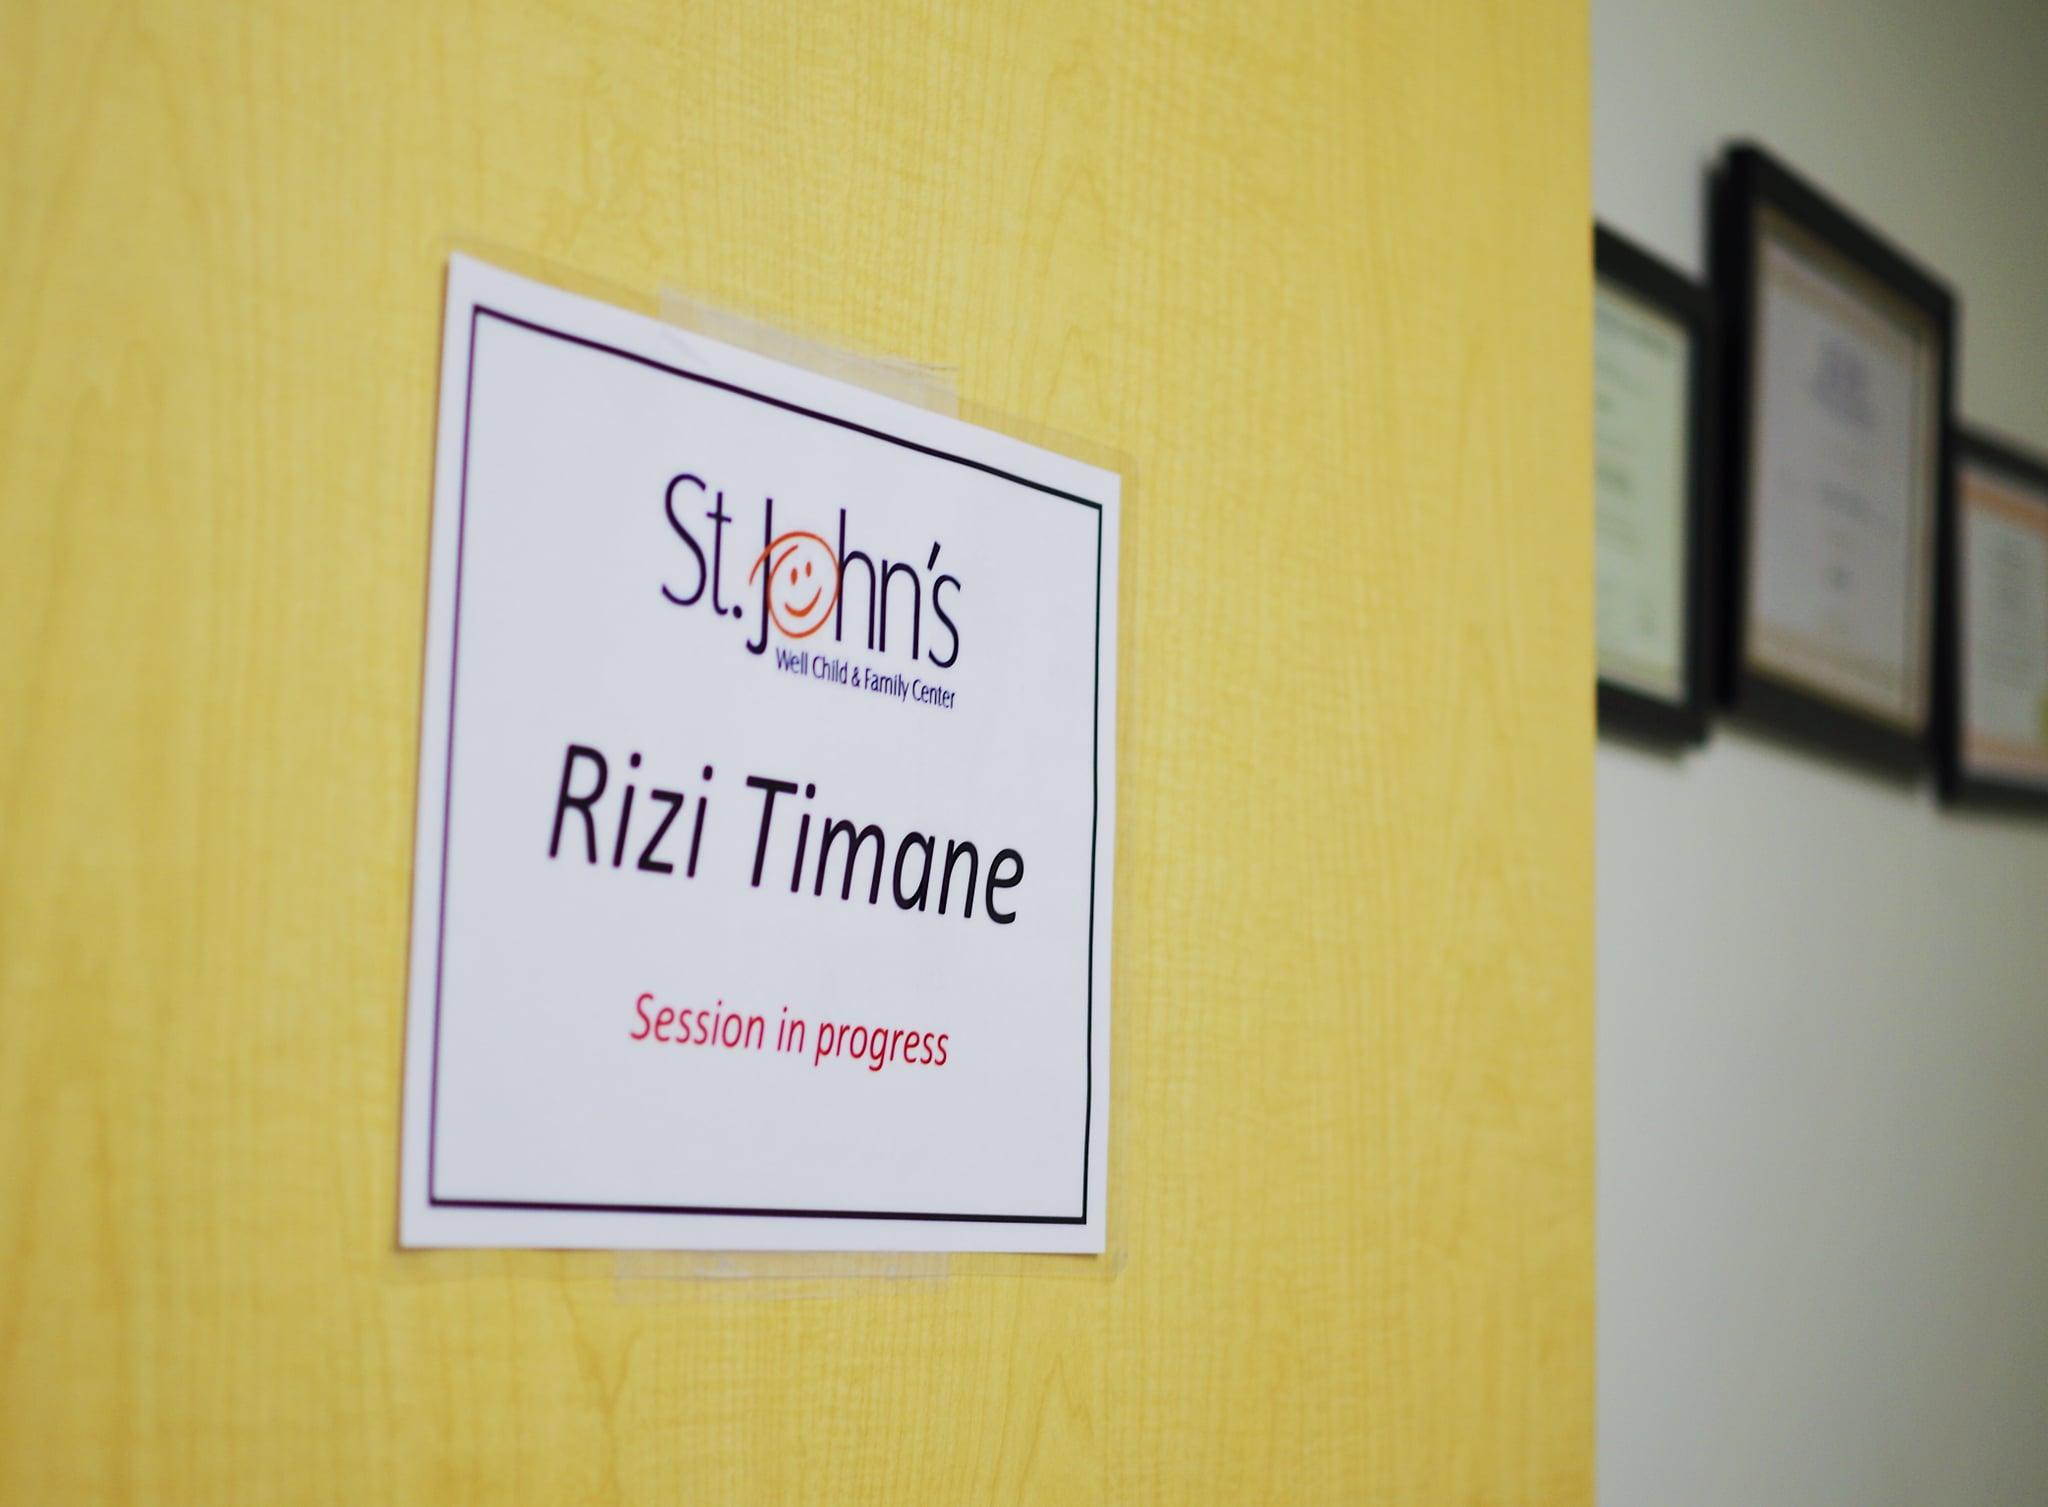 Rizi Timane's office at St. John's Well Child and Family Center in Los Angeles